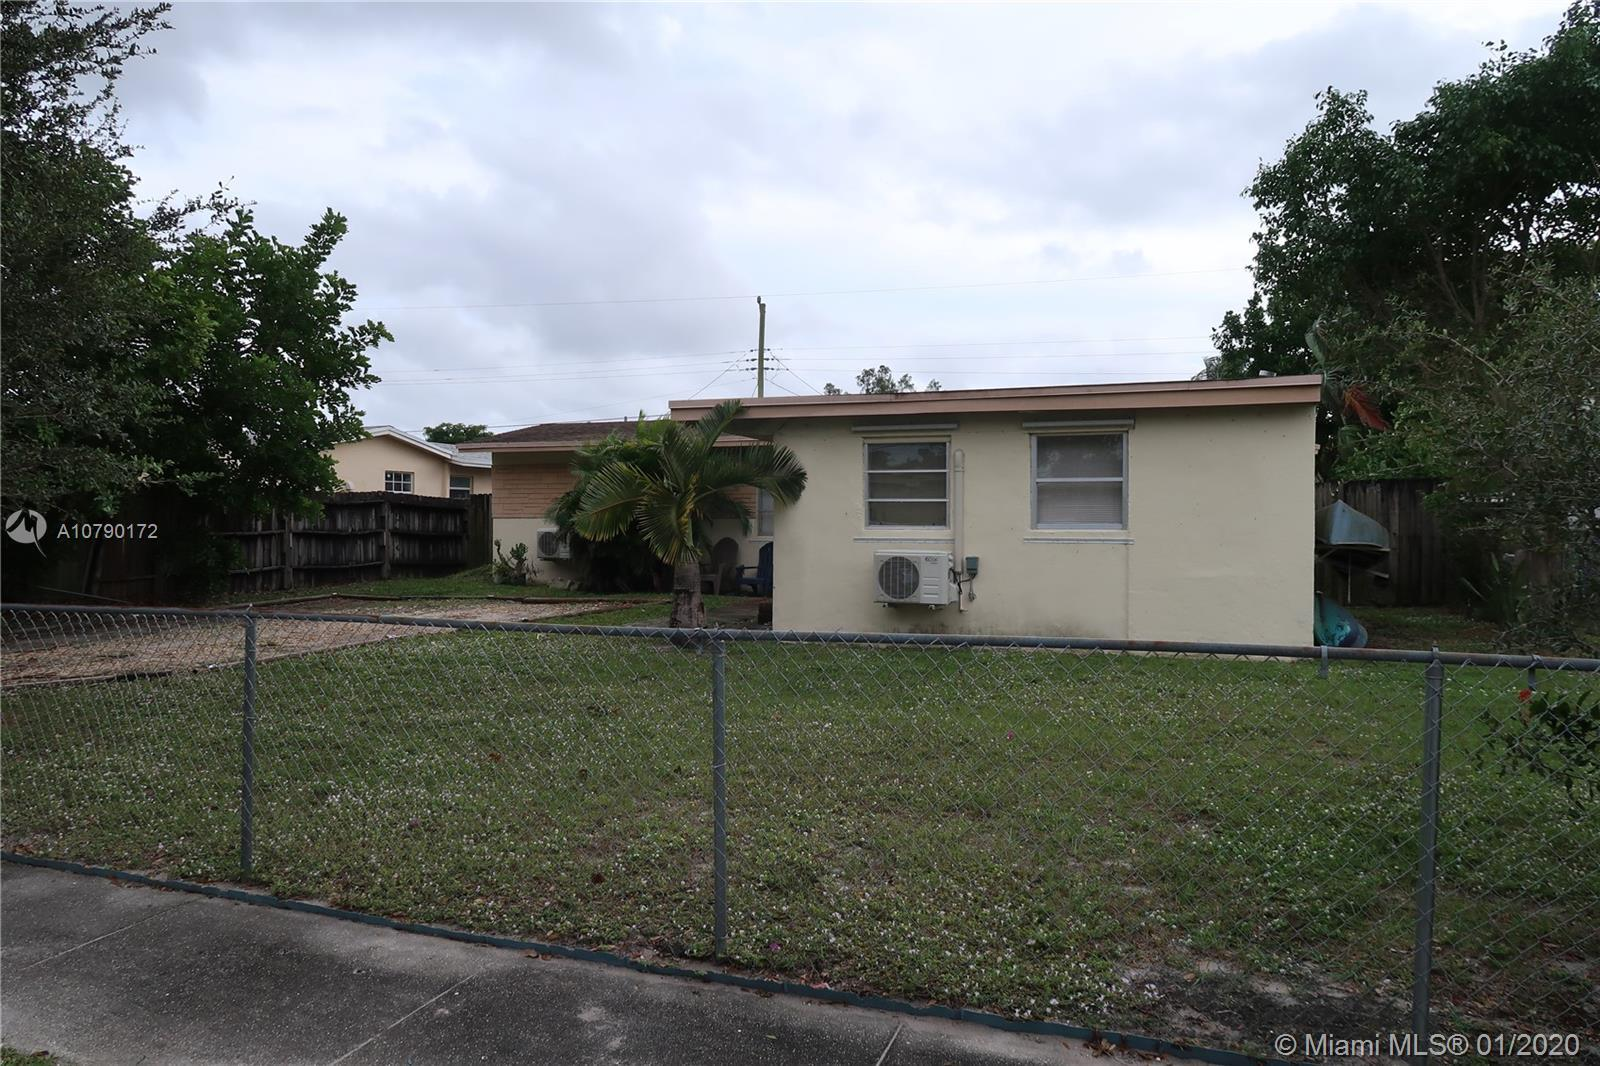 This is a three bedroom and two bathroom home located in the Driftwood Estates subdivision of Hollyw